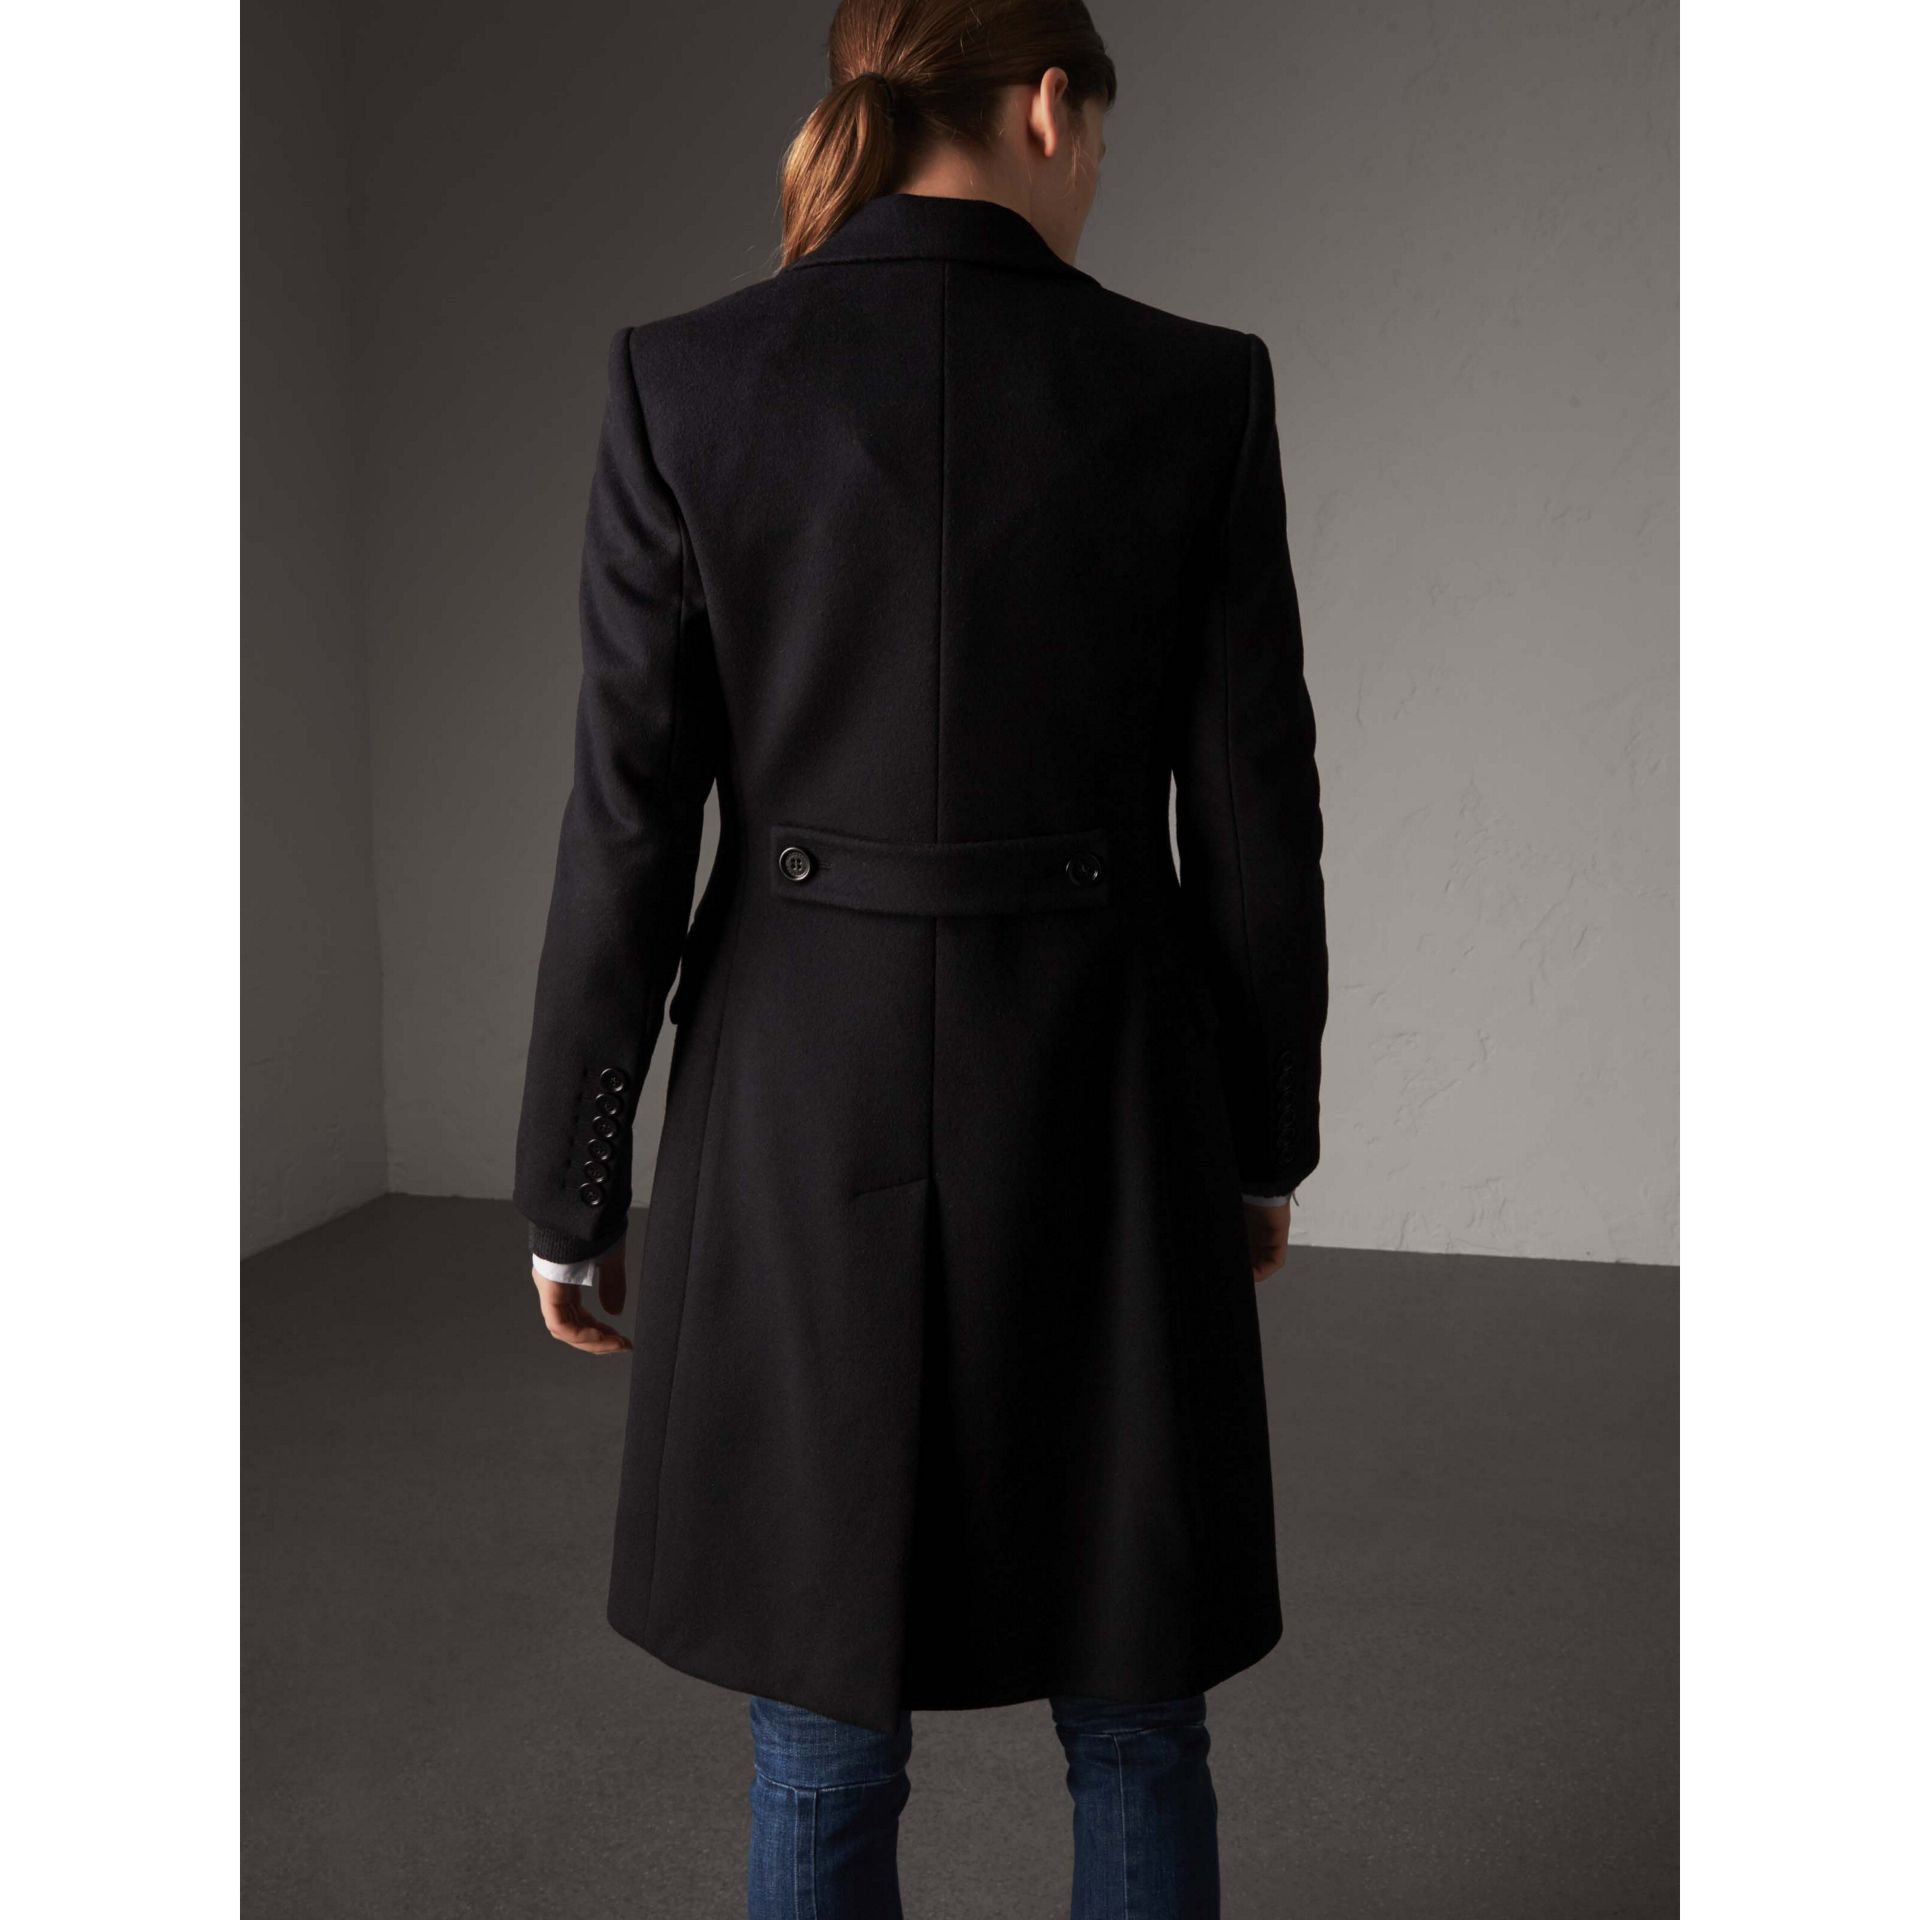 Wool Cashmere Tailored Coat in Black - Women | Burberry Australia - gallery image 3